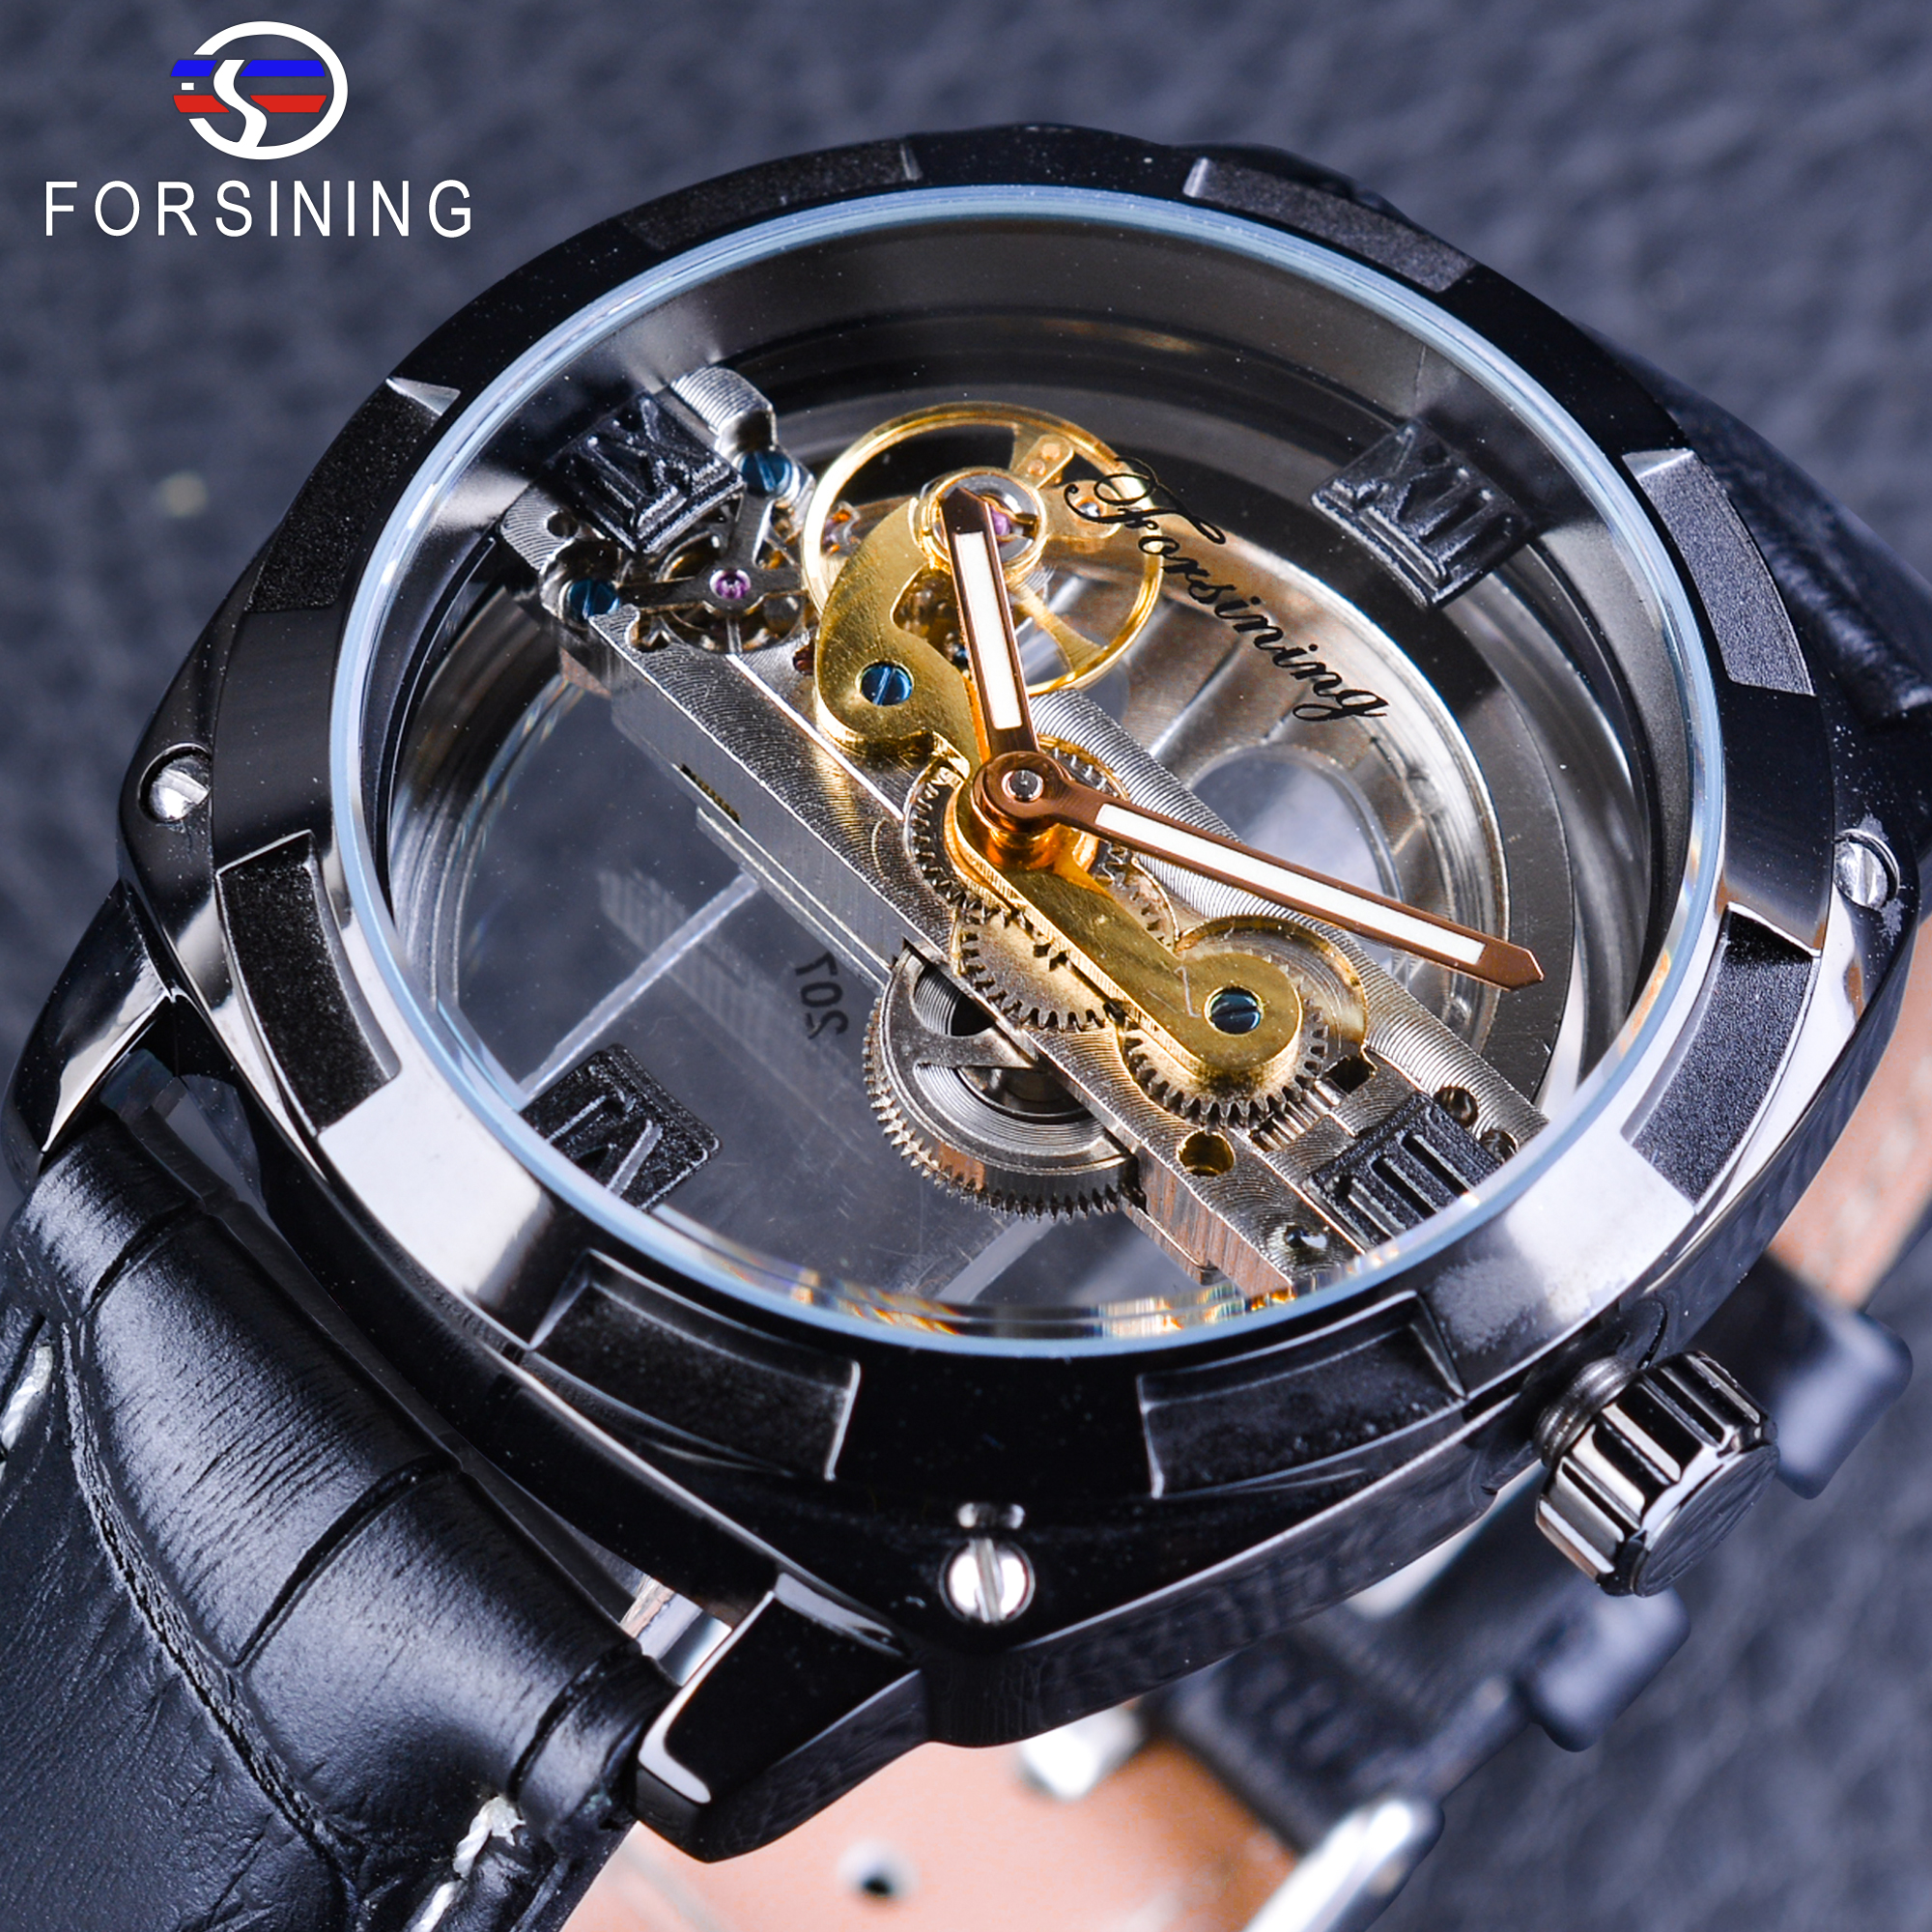 Forsining Official Exclusive Sale Double Side Transparent Steampunk Design Automatic Watch for Men Sport Watch Genuine LeatherForsining Official Exclusive Sale Double Side Transparent Steampunk Design Automatic Watch for Men Sport Watch Genuine Leather